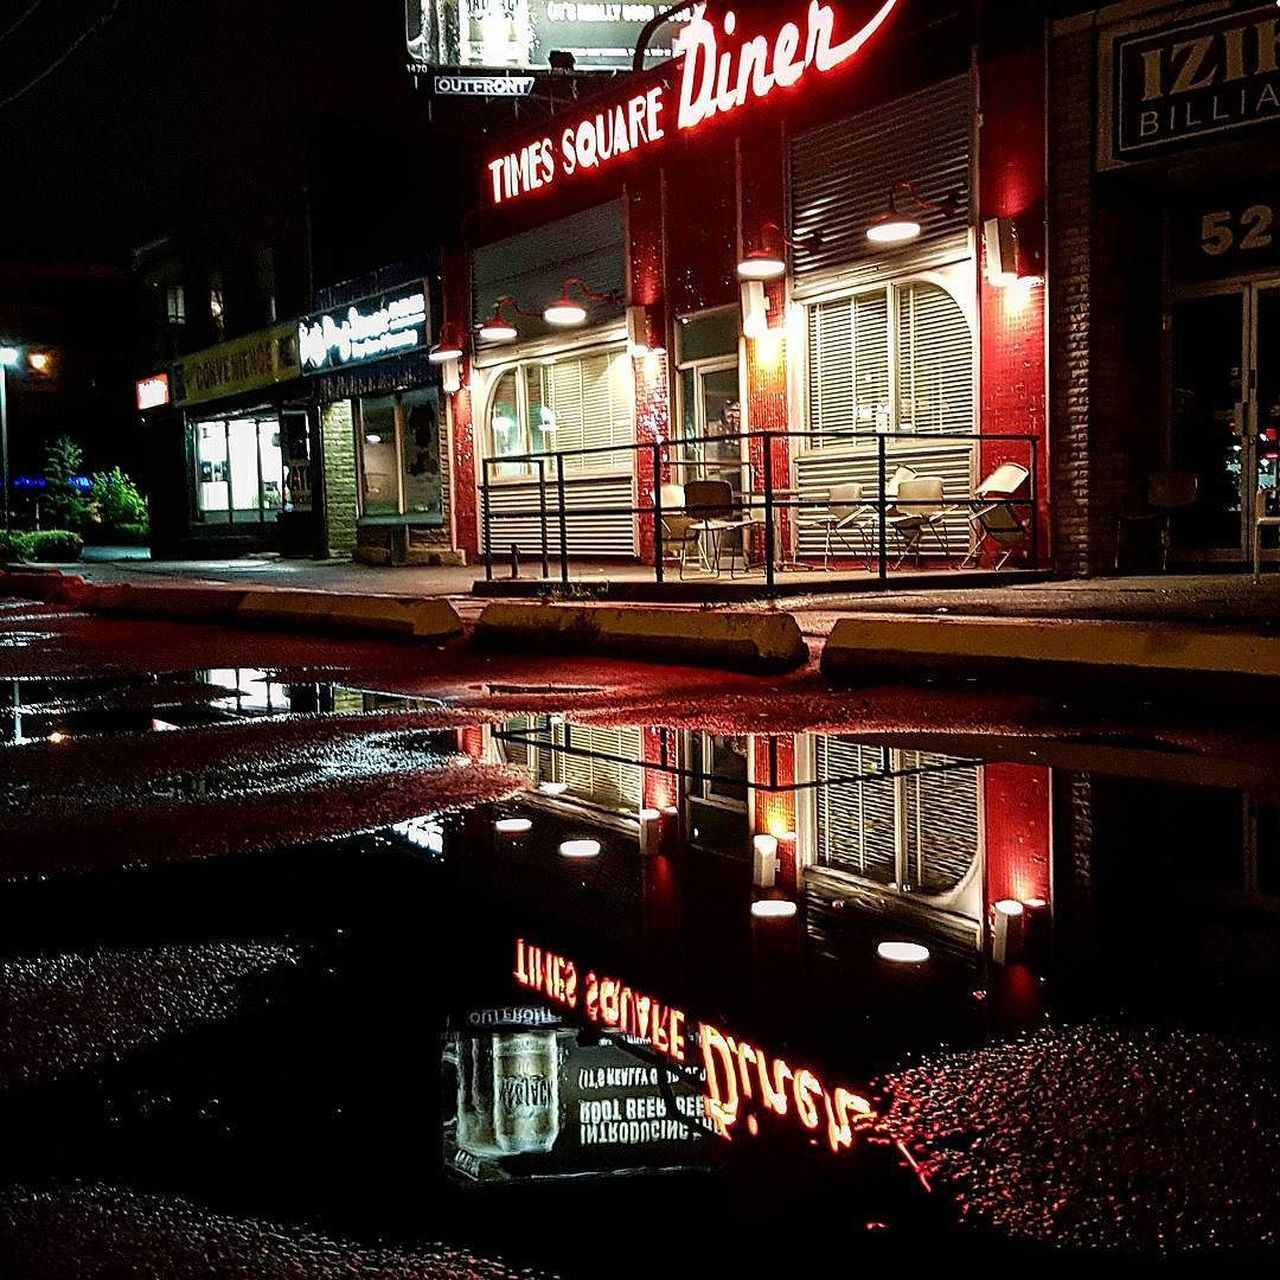 Reflecting on the neon brightness in a pool of suburban darkness - 📸 on Samsung Galaxy S7 - Red Reflection Leisure Activity Illuminated Horizontal No People Night Architecture Downsview Torontophoto Toronto Canada Old-fashioned Samsung Galaxy S7 Weathered Toronto TorontoLife Night Lights Nightphotography Torontophotography Restaurant Foodie Greasy Spoon Diner Neon Lights